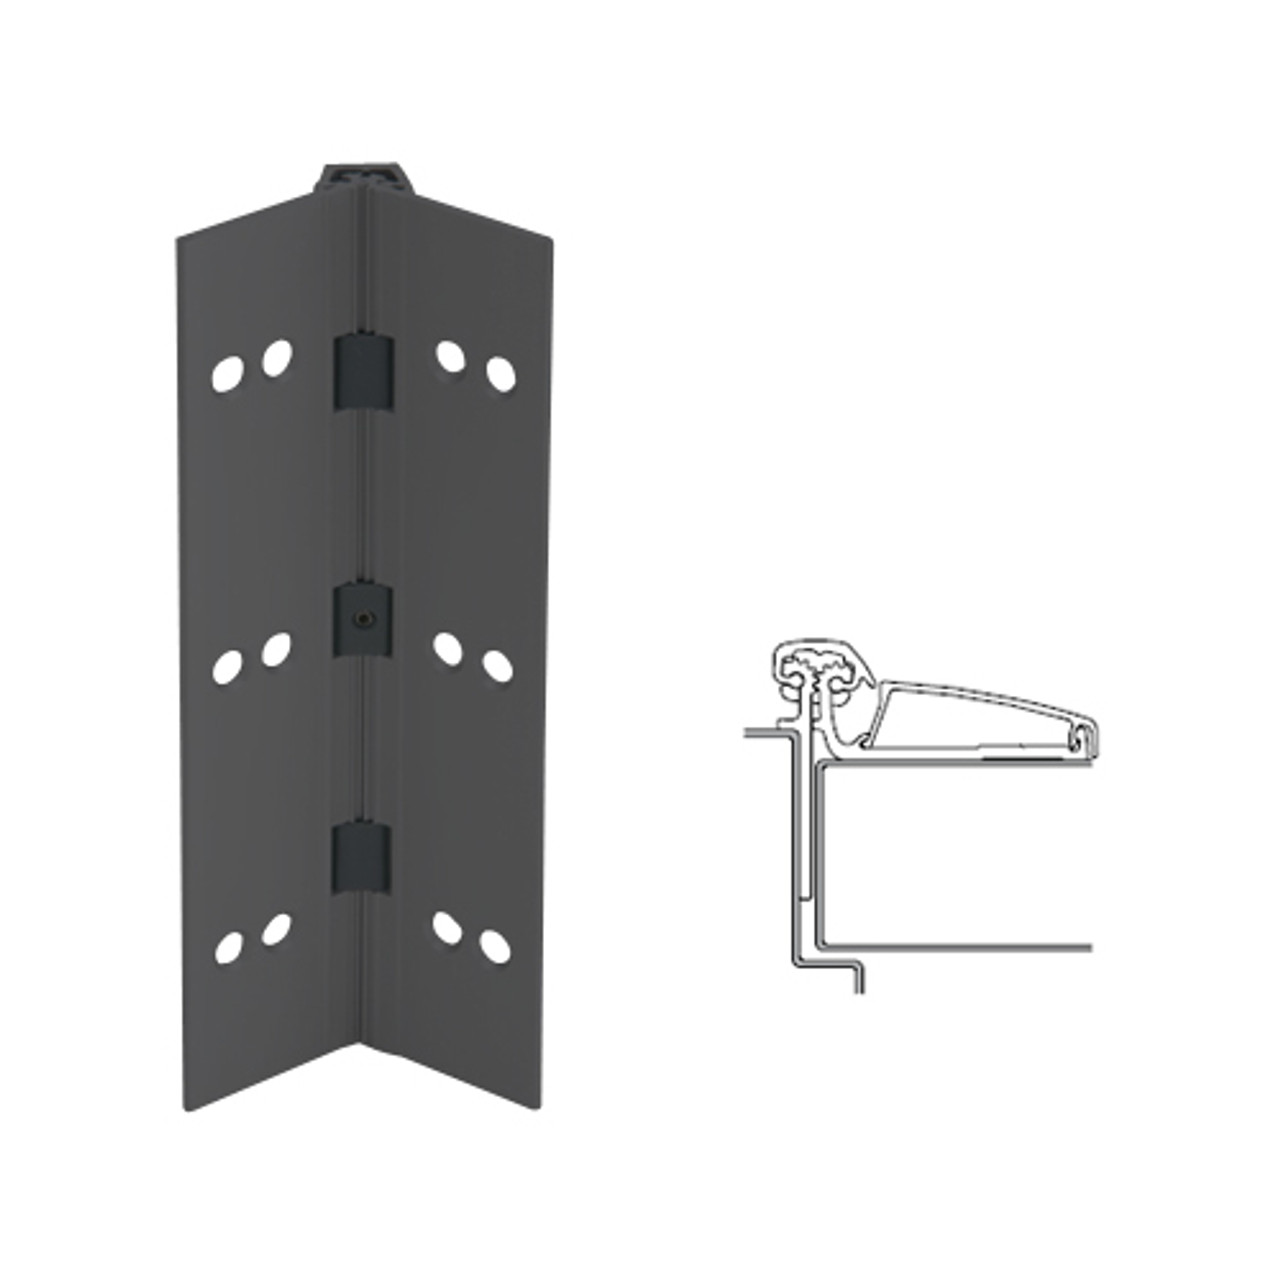 045XY-315AN-120-SECWDWD IVES Adjustable Half Surface Continuous Geared Hinges with Security Screws - Hex Pin Drive in Anodized Black